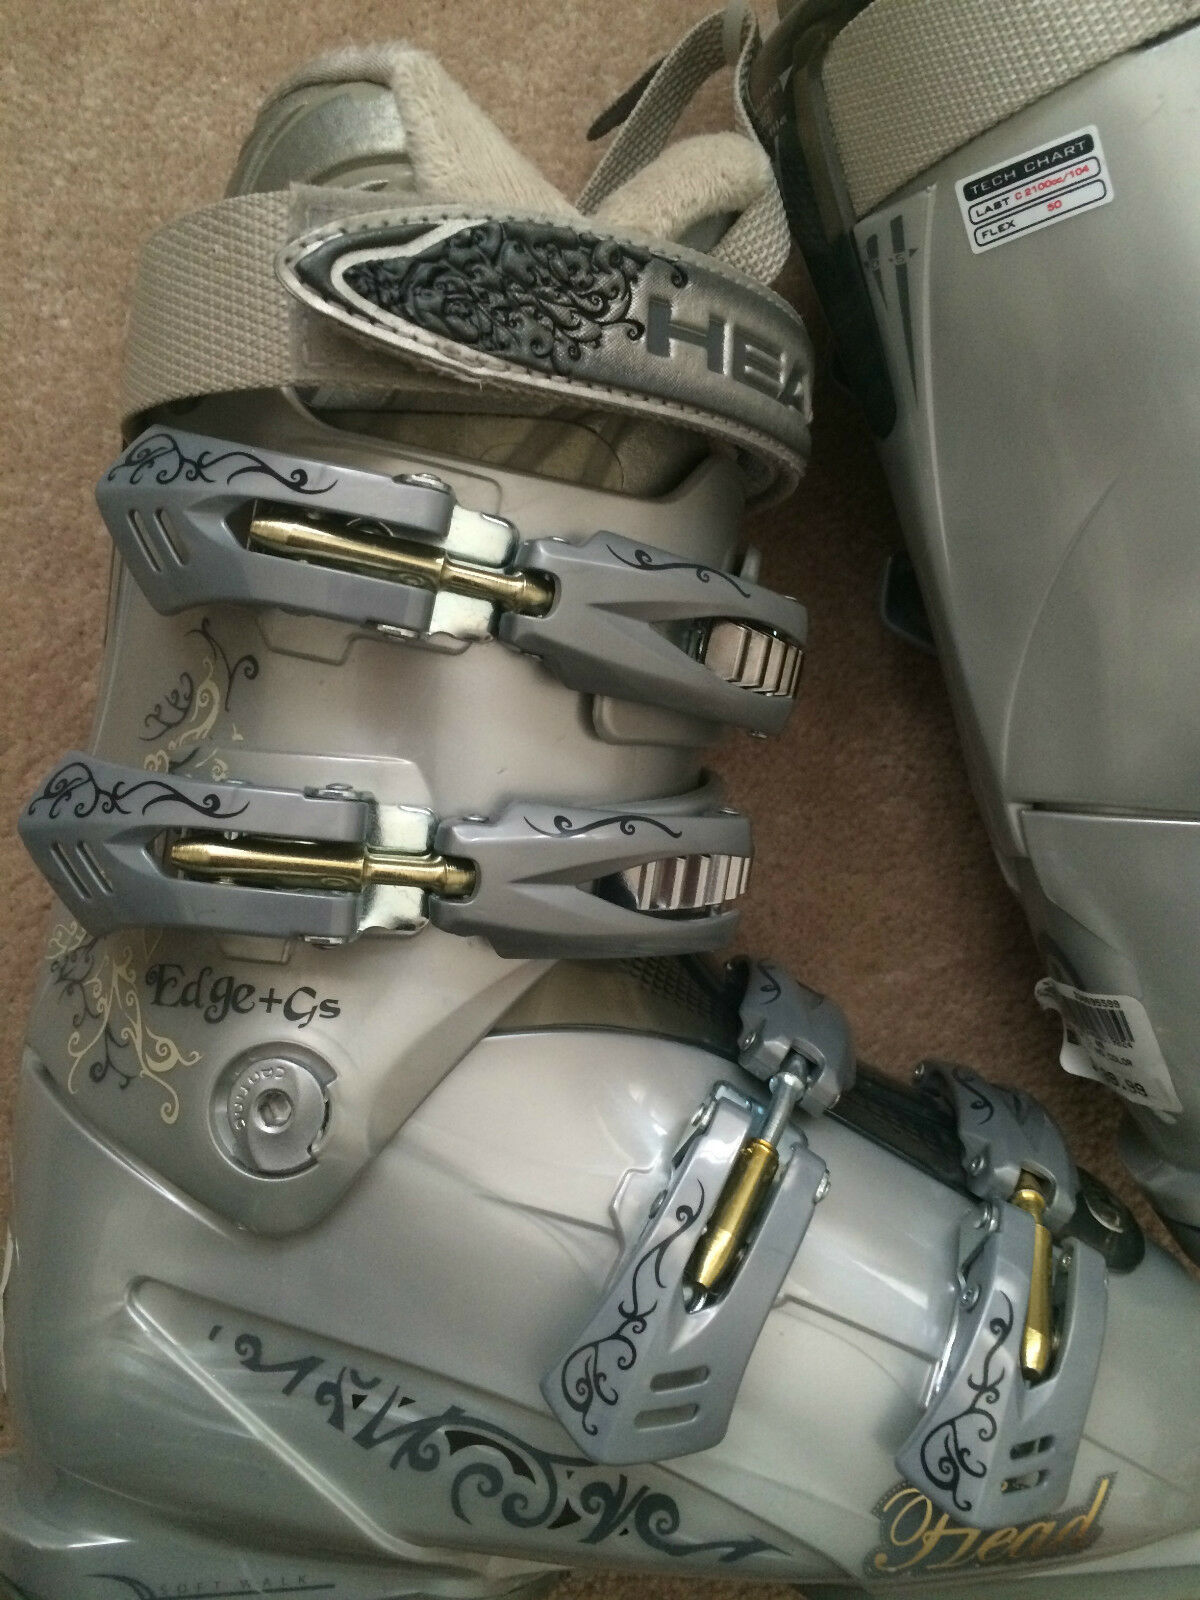 Head Edge + GS L Ski Boots  Women's Sz 22.5  5.5 Brand New Never Used  outlet sale